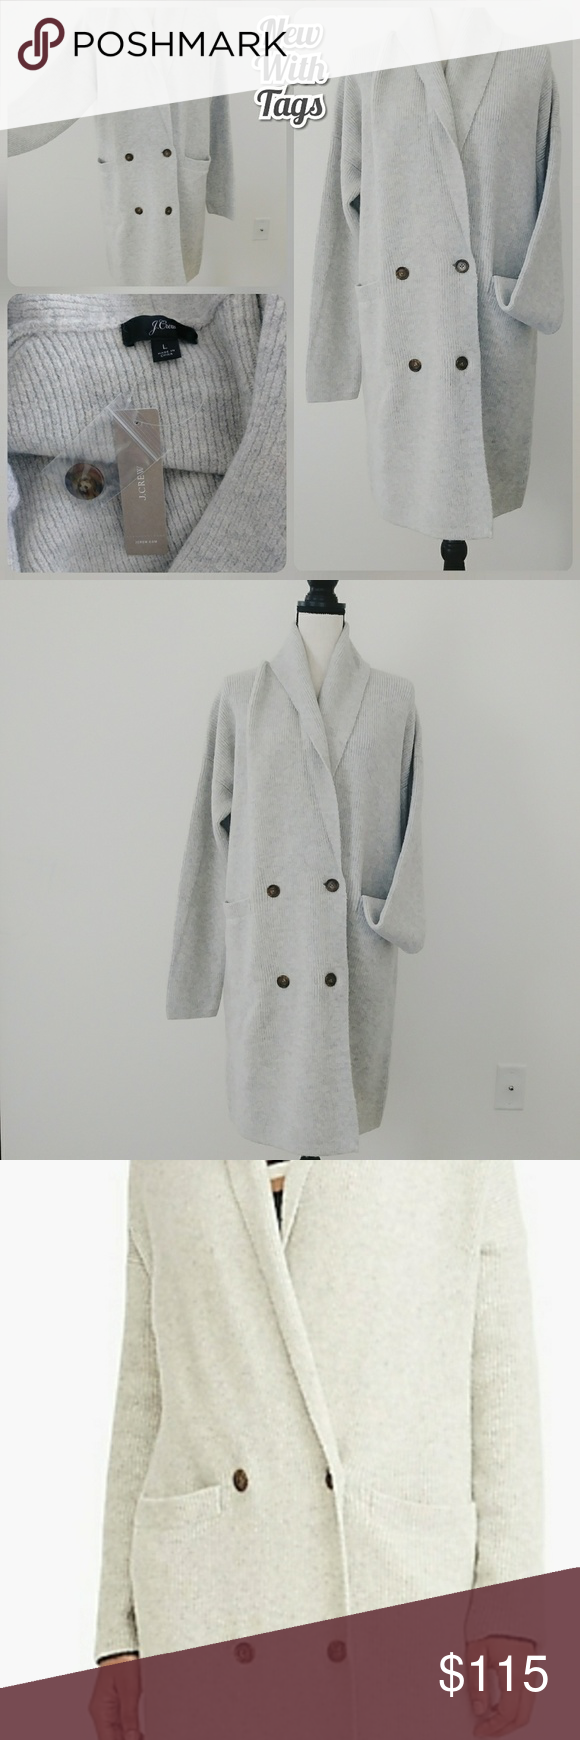 Nwt J Crew Double Breasted Cardigan Coat Soft Cardigan Coat Clothes Design Double Breasted Cardigan